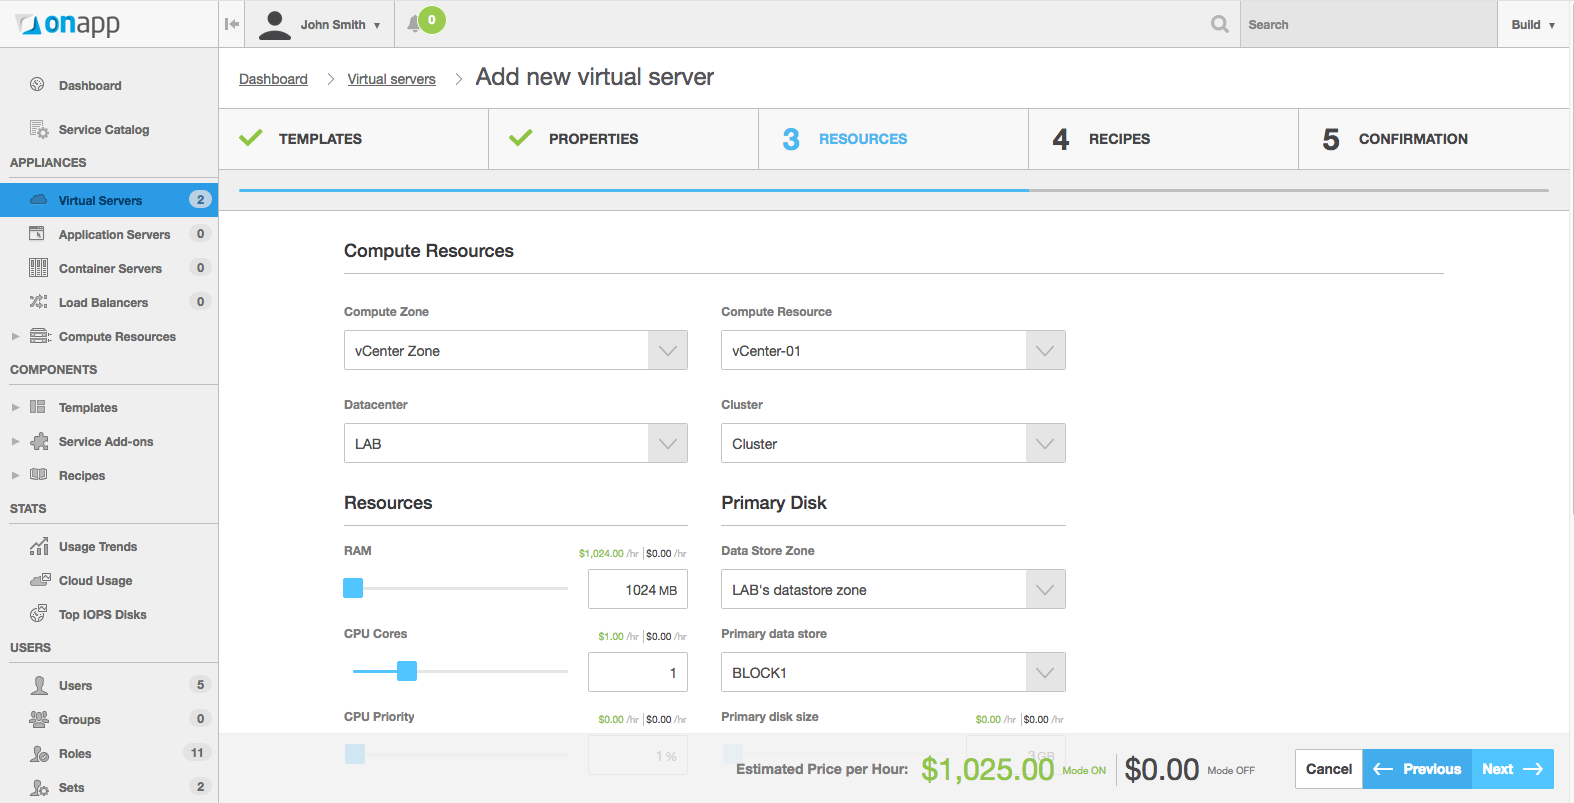 To use OnApp for vCenter, you will need to deploy a server that the OnApp software will be installed on